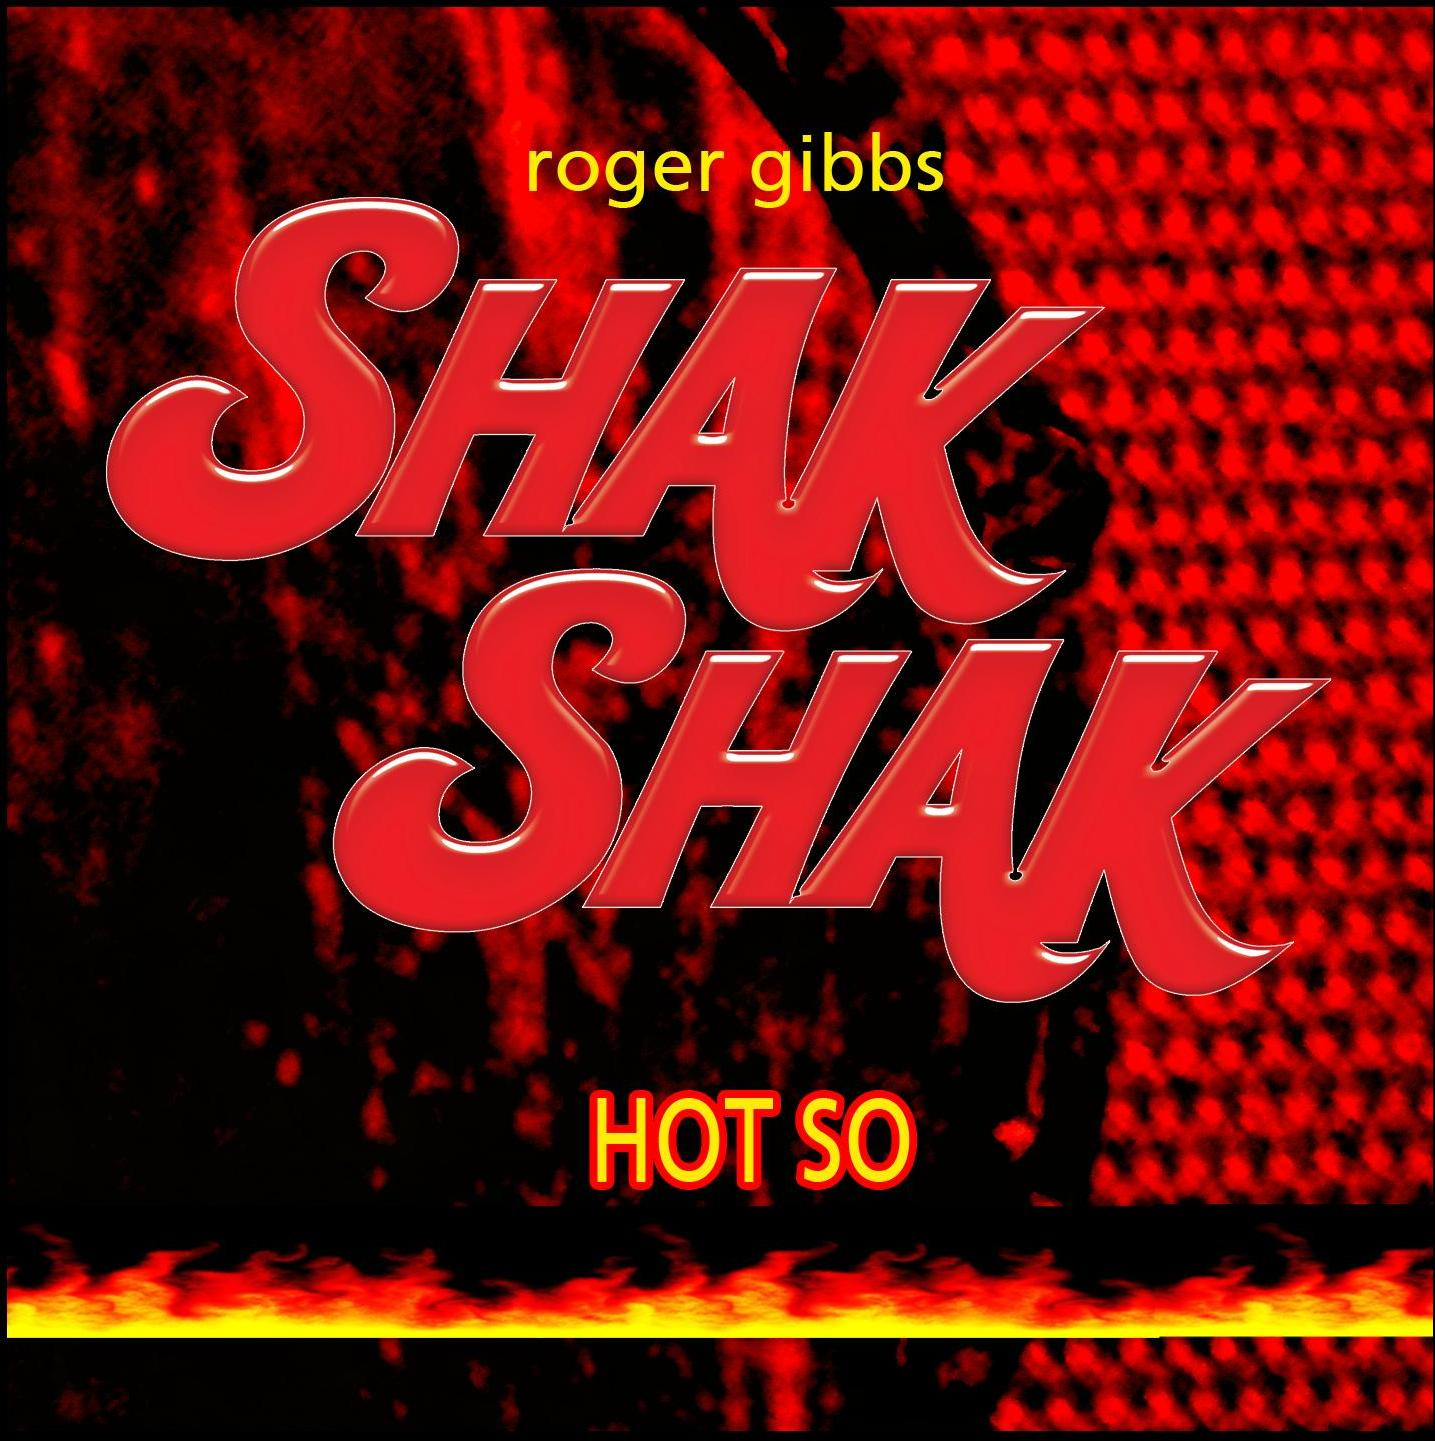 roger_gibbs_Shak_Shak__HOT_SO